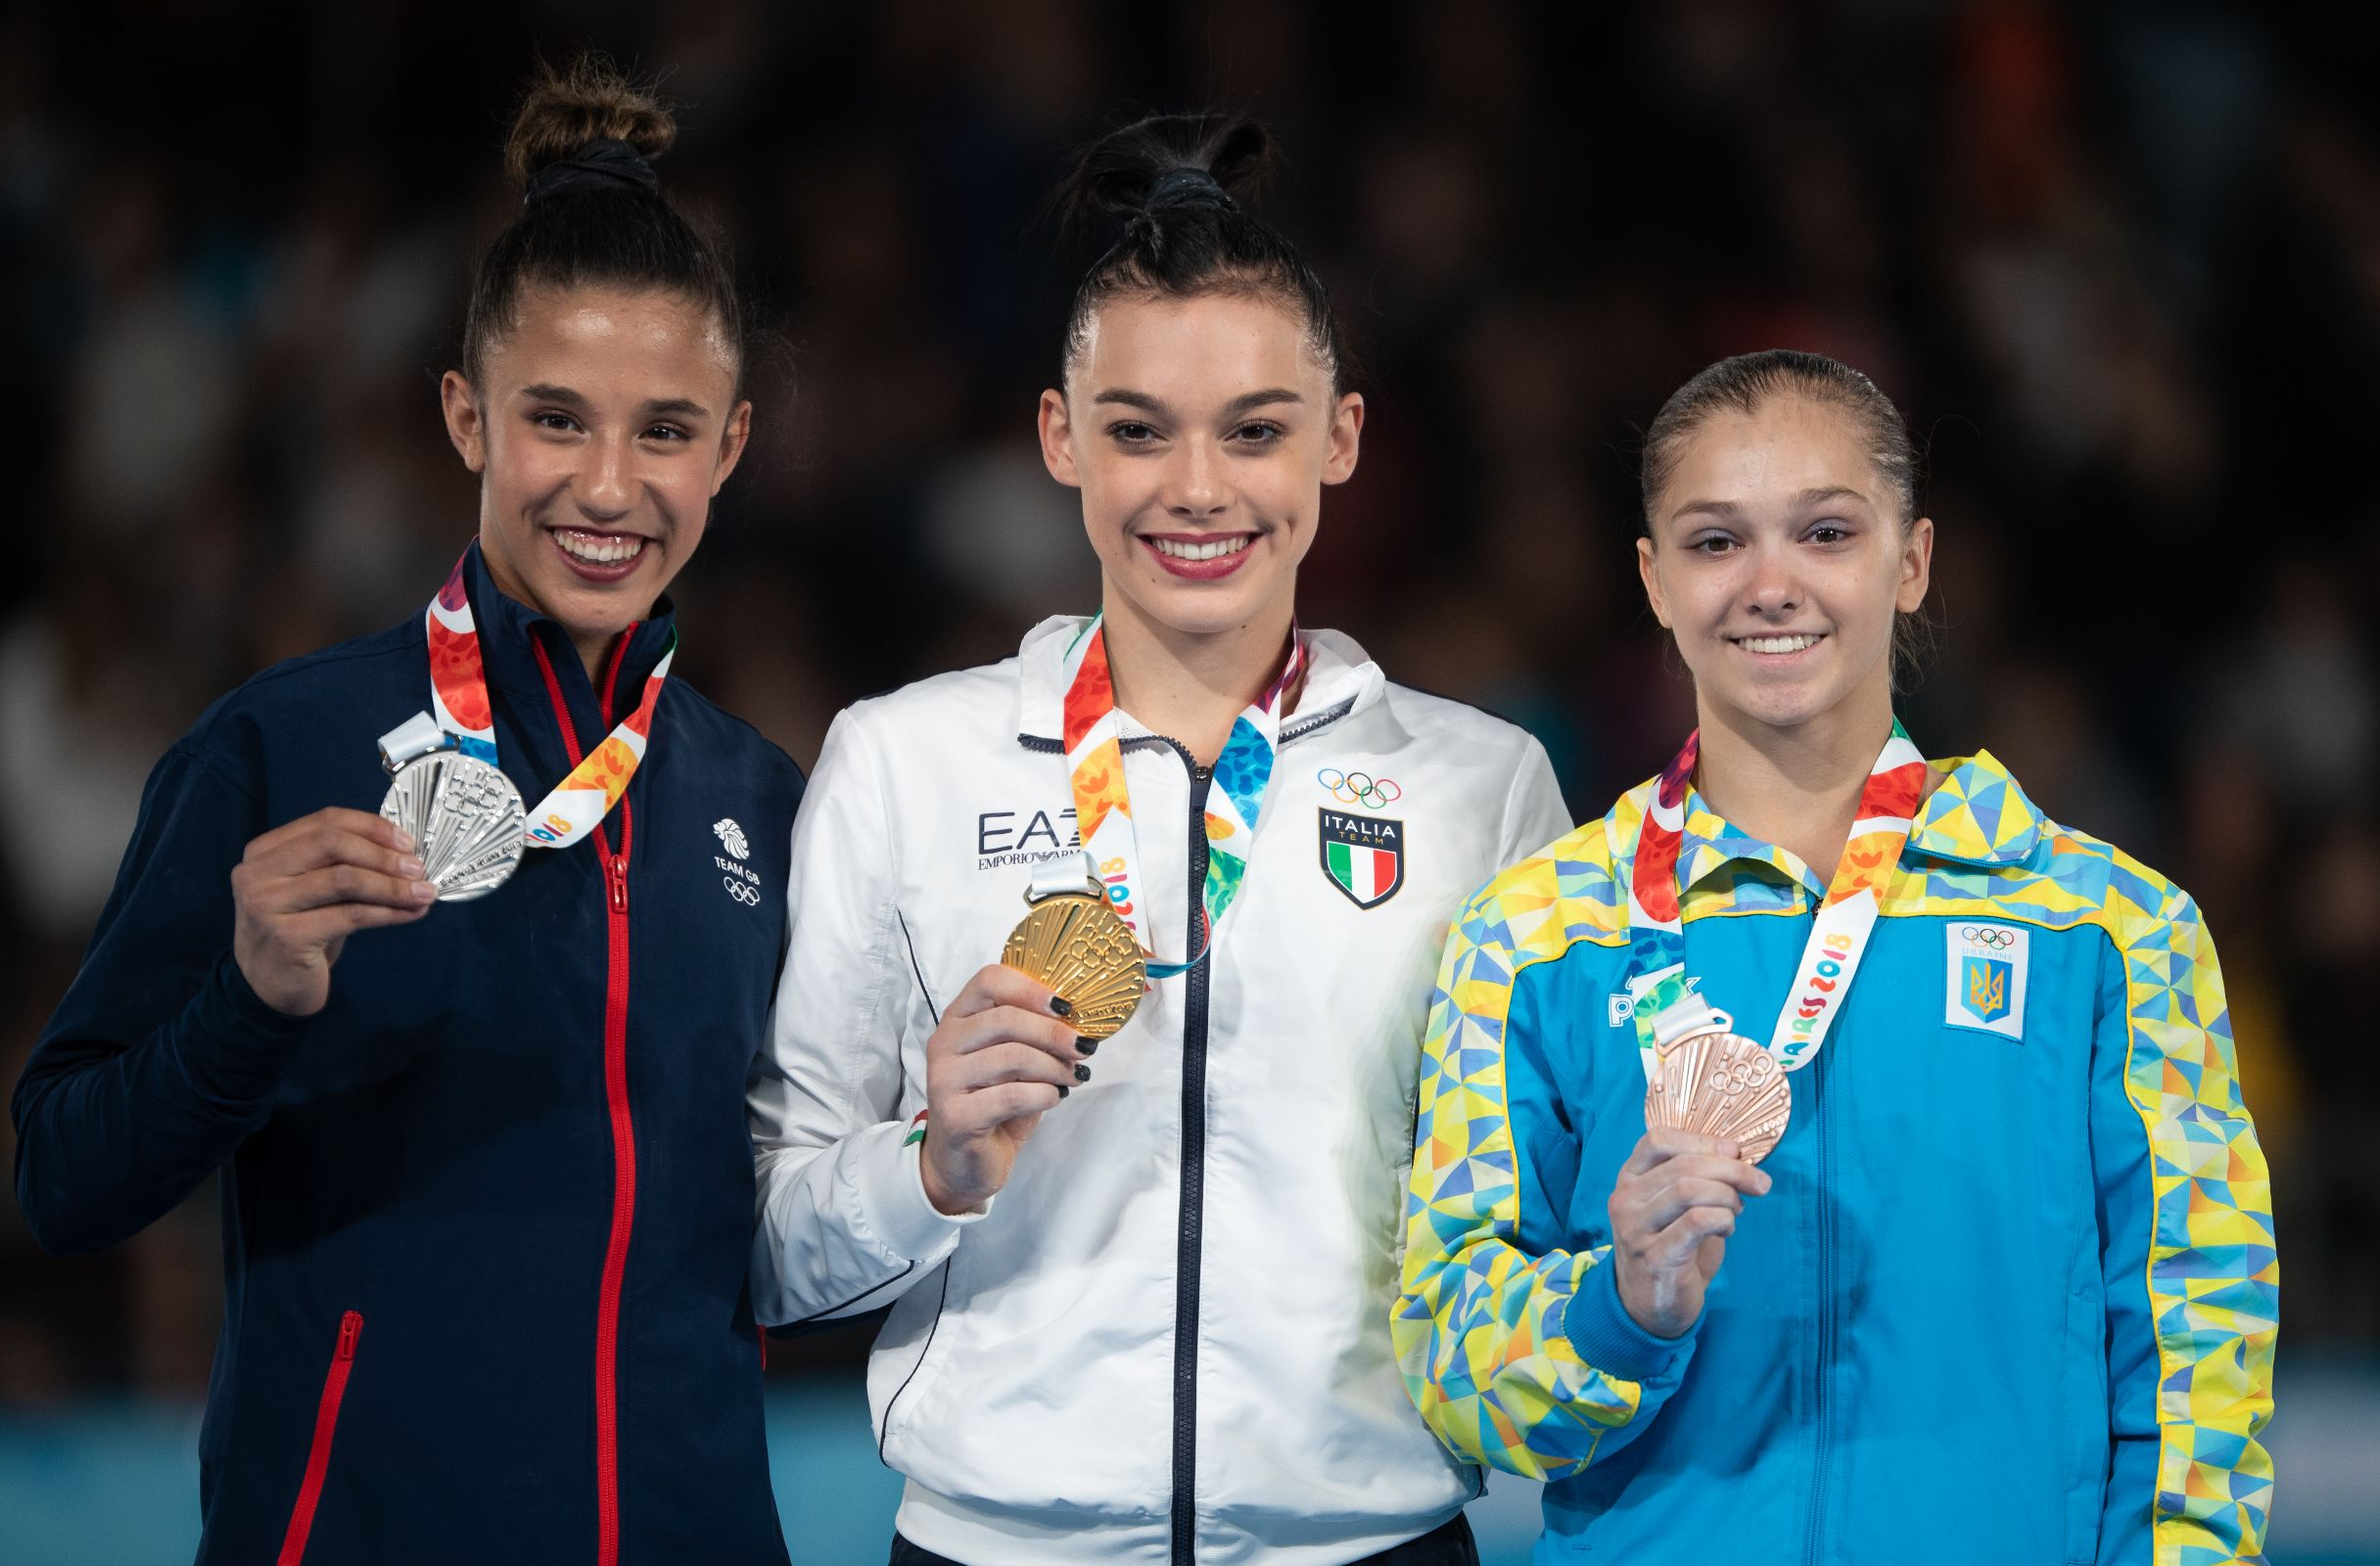 Buenos Aires 2018 - Artistic Gymnastics - Women's Individual All-Around